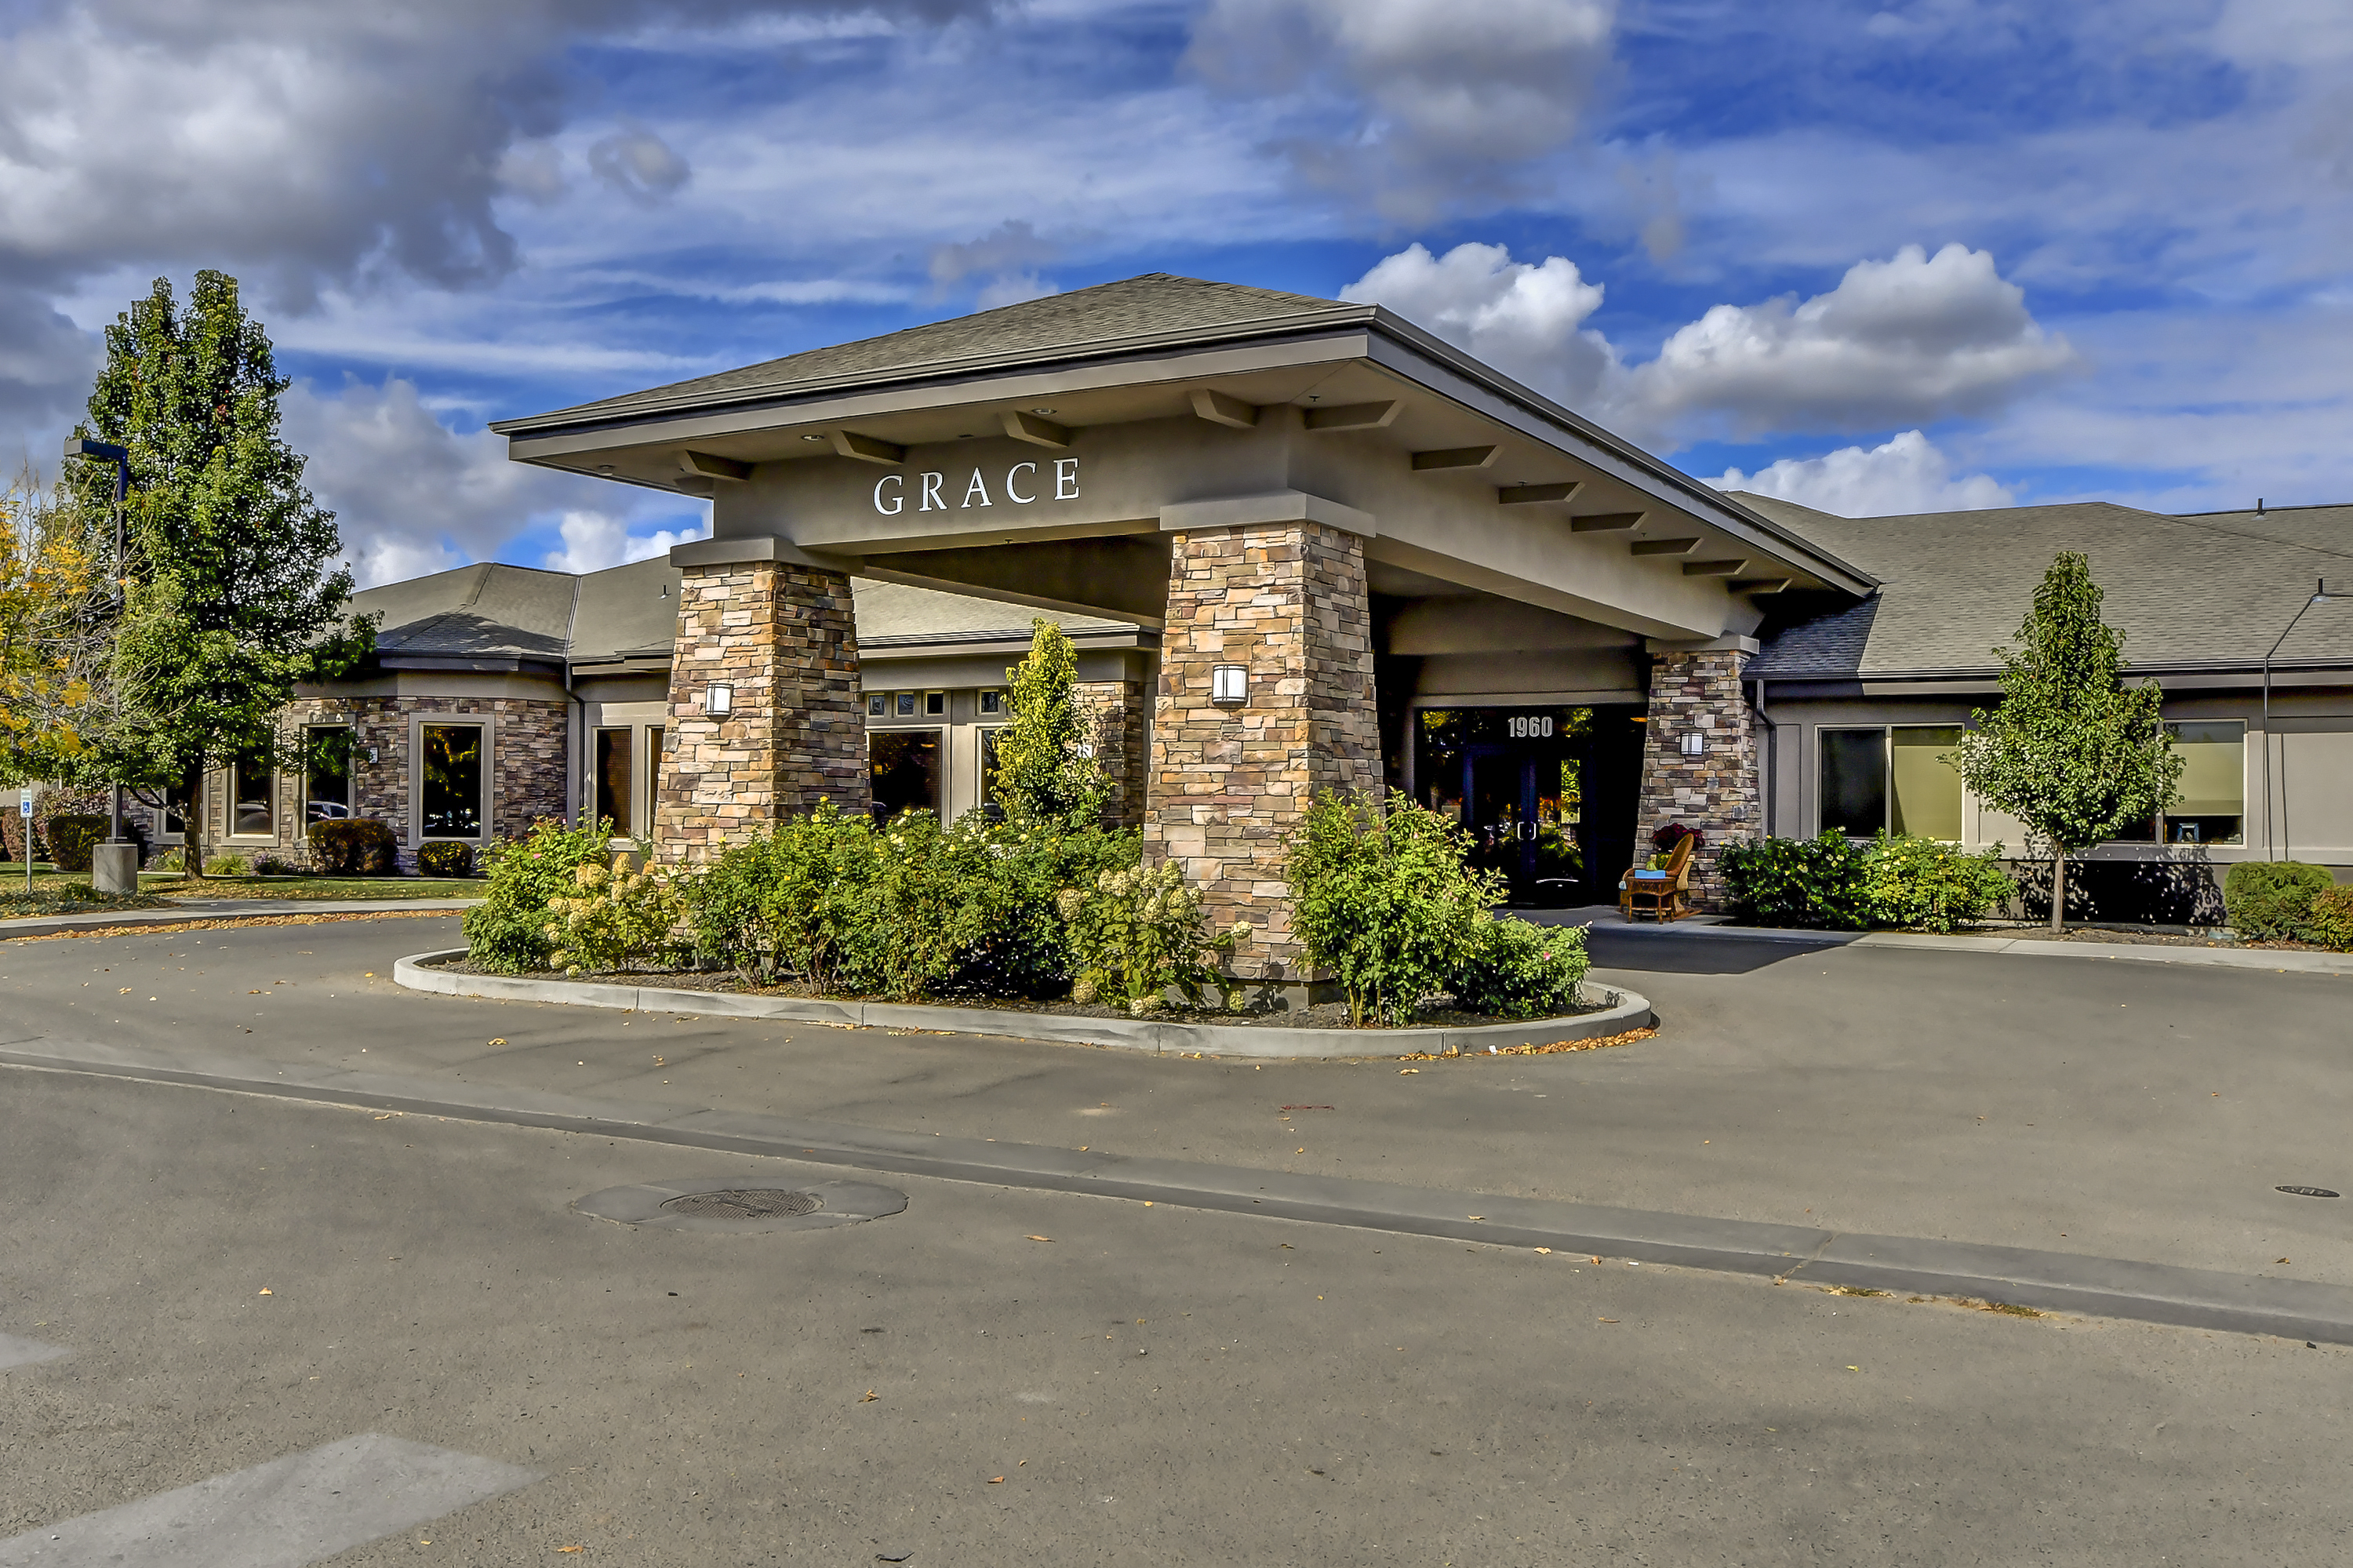 assisted living senior care in boise grace assisted living we